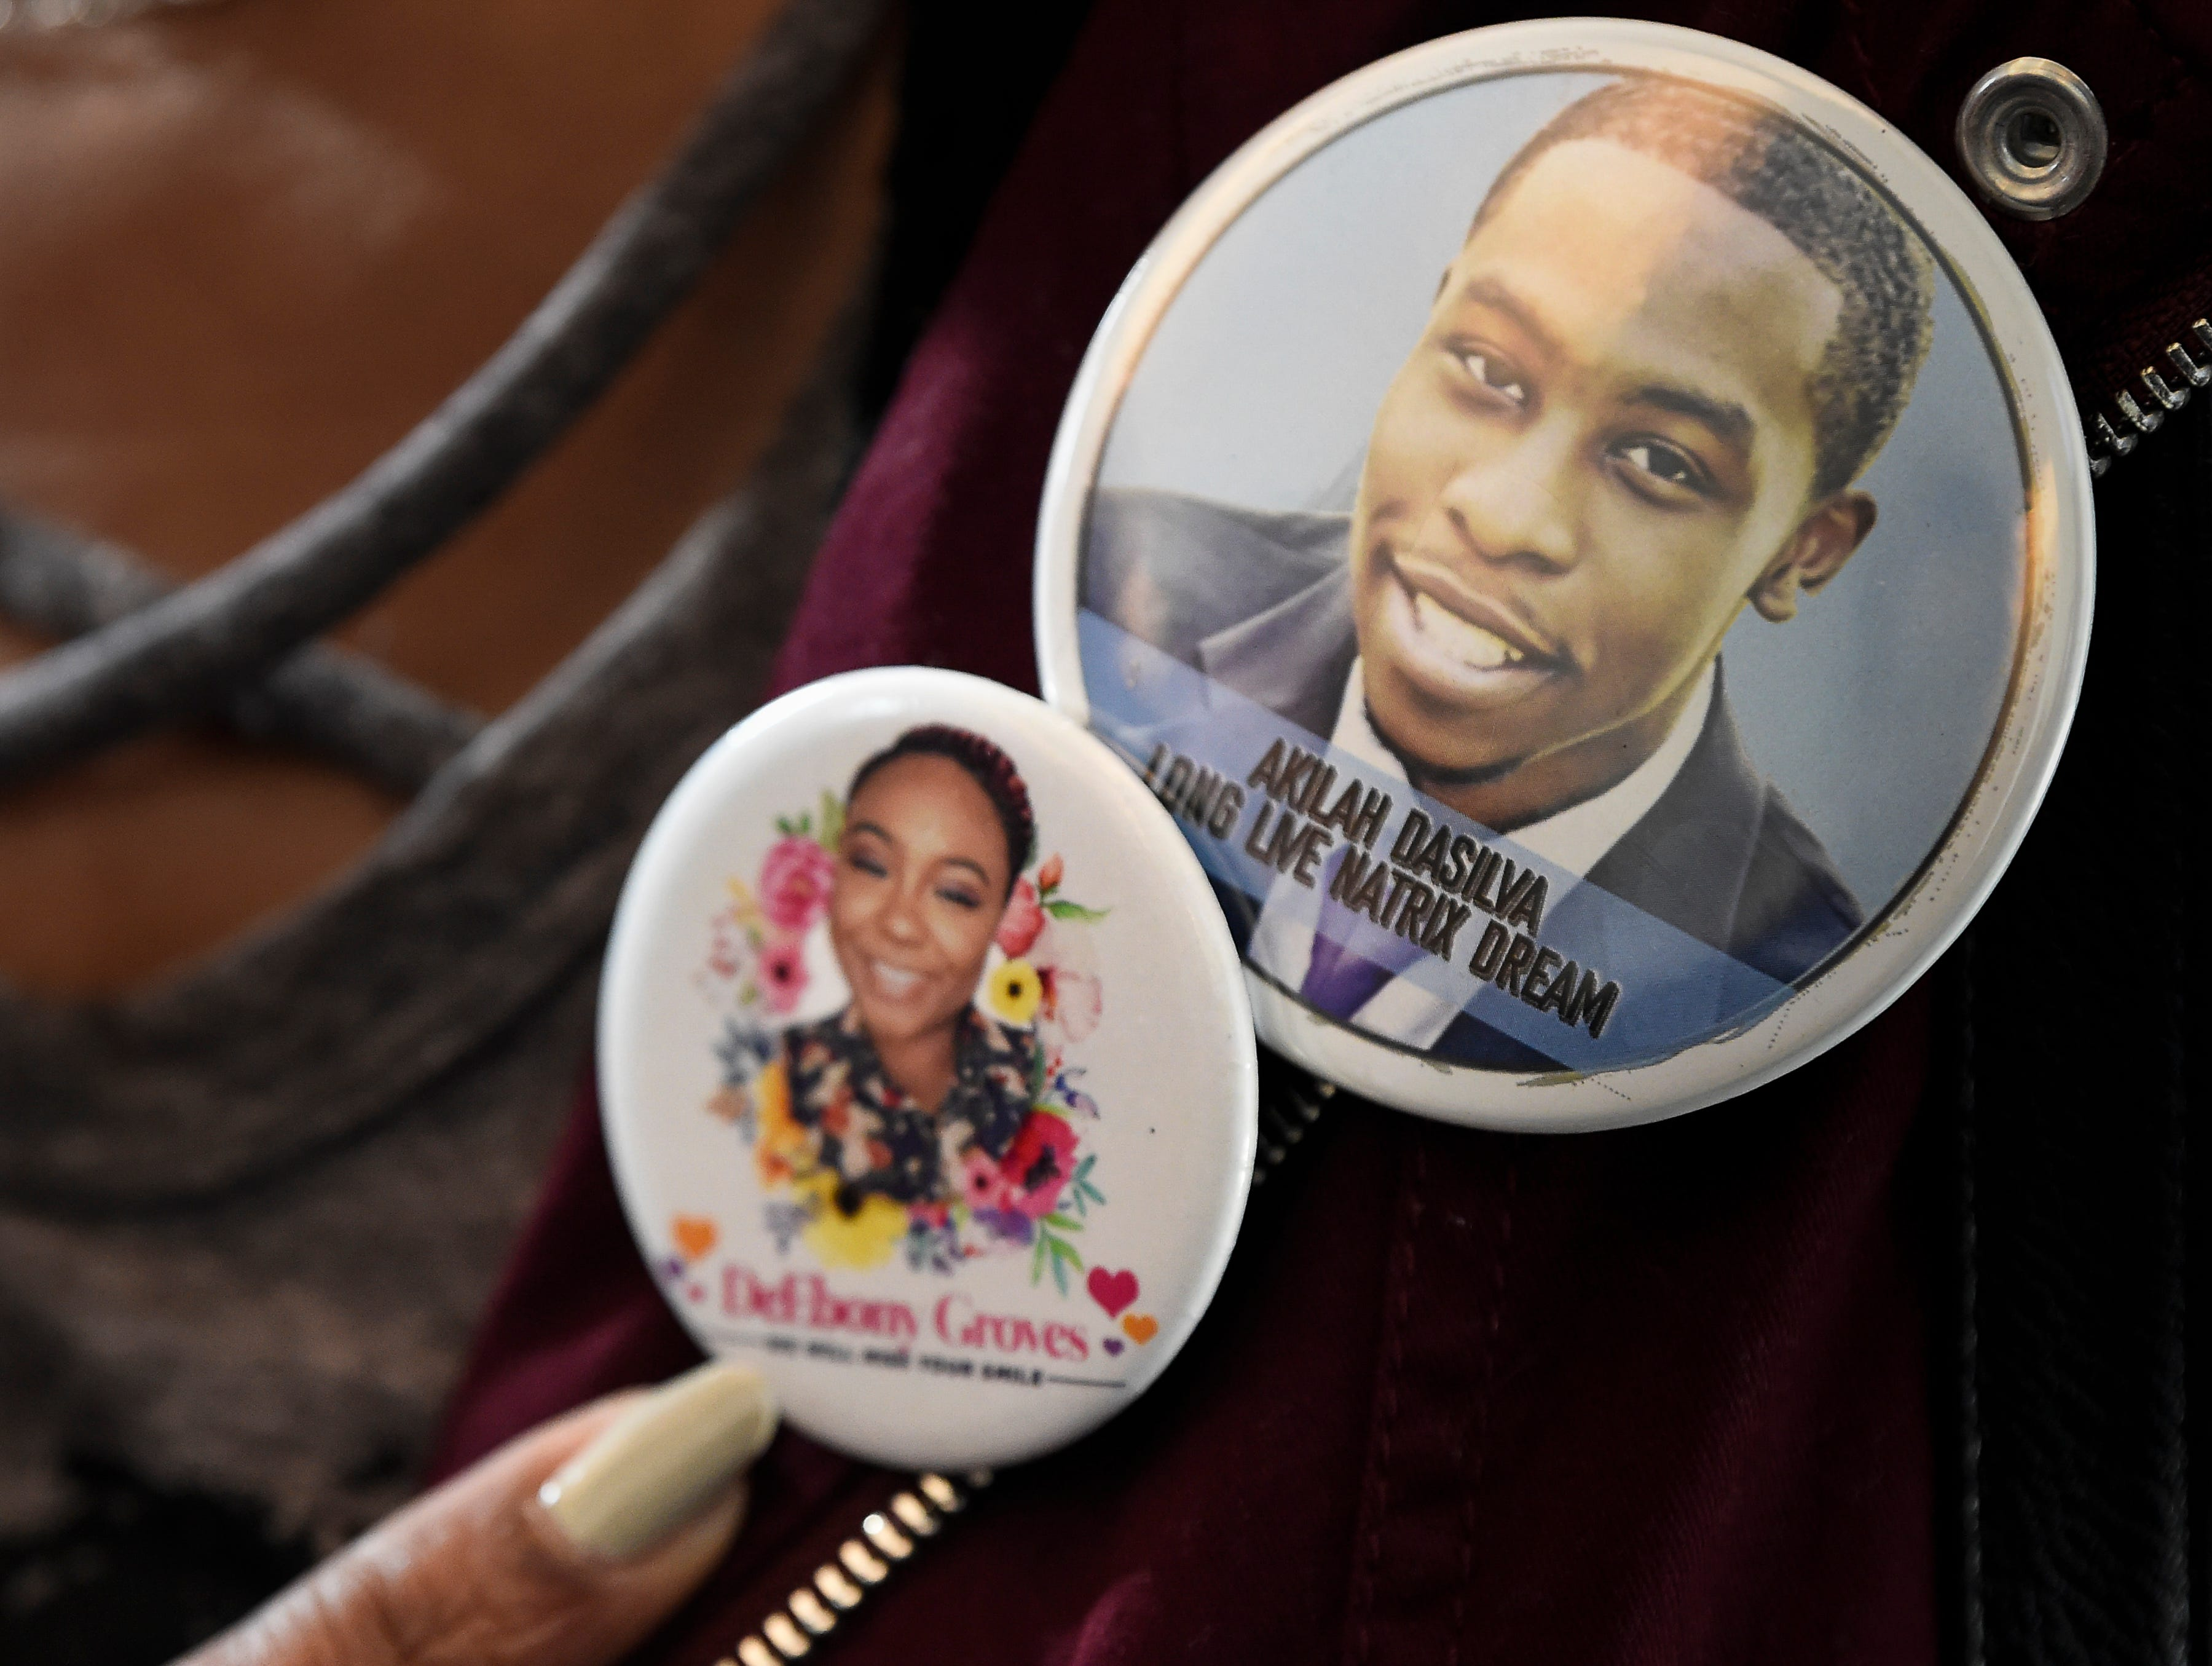 Shirl Baker wears buttons on her label honoring her daughter DeEbony Groves and fellow Waffle House victim Akilah Dasilva after Travis Reinking pleaded not guilty to charges related to a mass shooting that killed four people and injured several others at a Waffle House last year during his arraignment hearing at Justice A. A. Birch Building Wednesday, Feb. 13, 2019 in Nashville, Tenn.